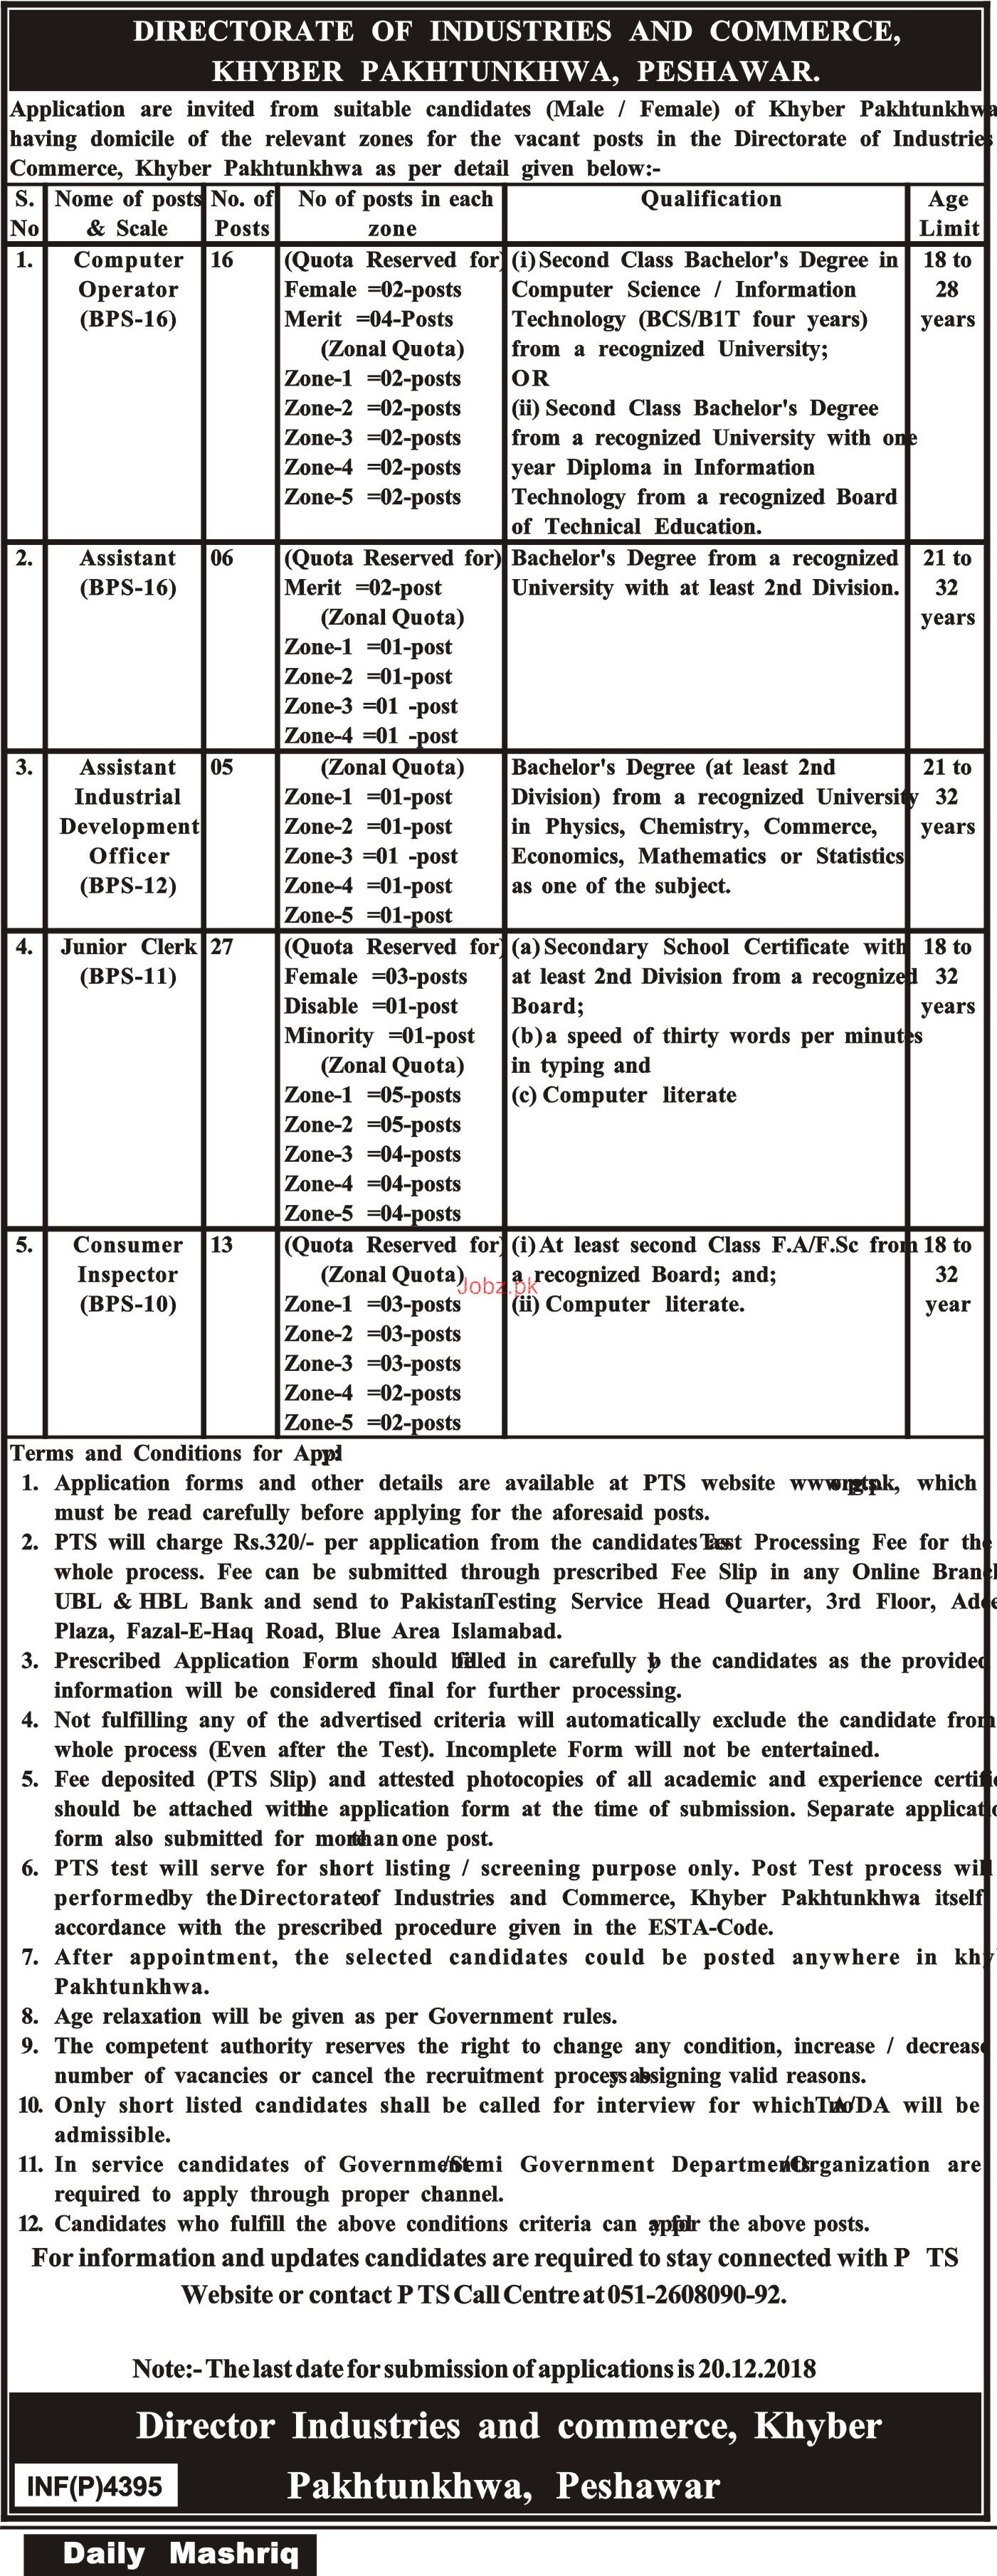 KPK Directorate of Industries and Commerce PTS Jobs 2021 Application Form Roll No Slip Download Online